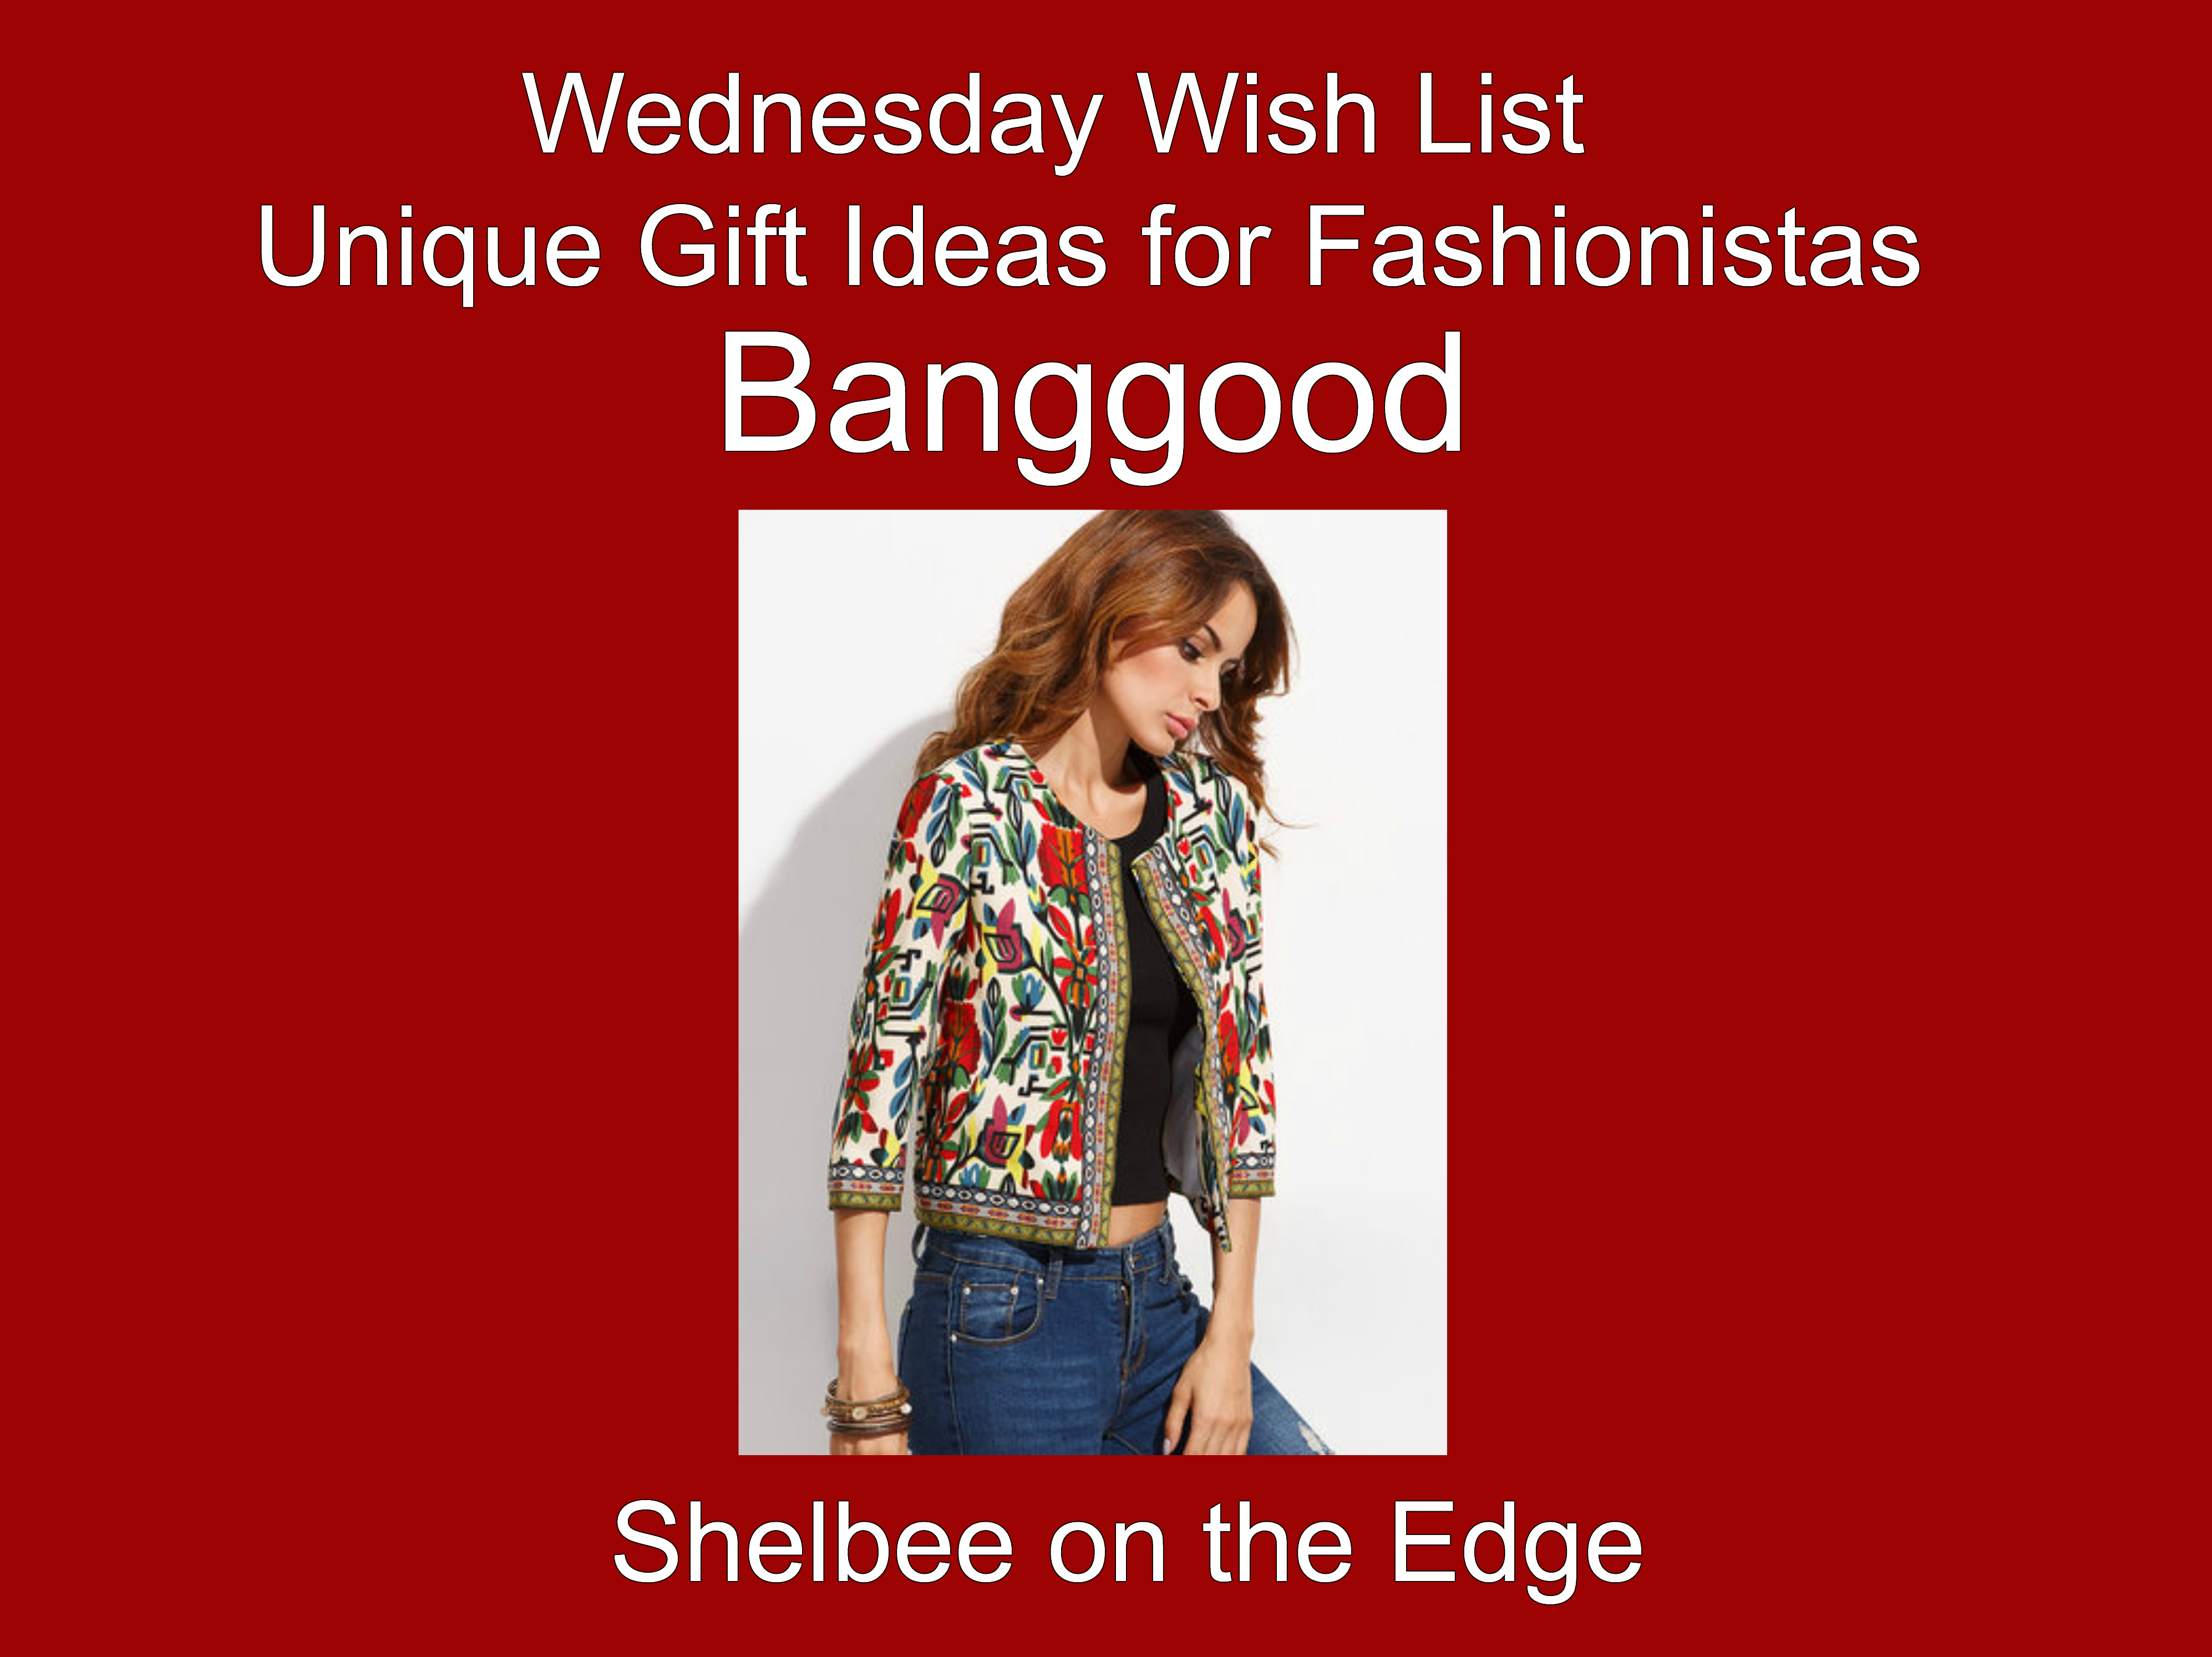 Wednesday Wish List: Banggood – Unique Gift Ideas for Fashionistas